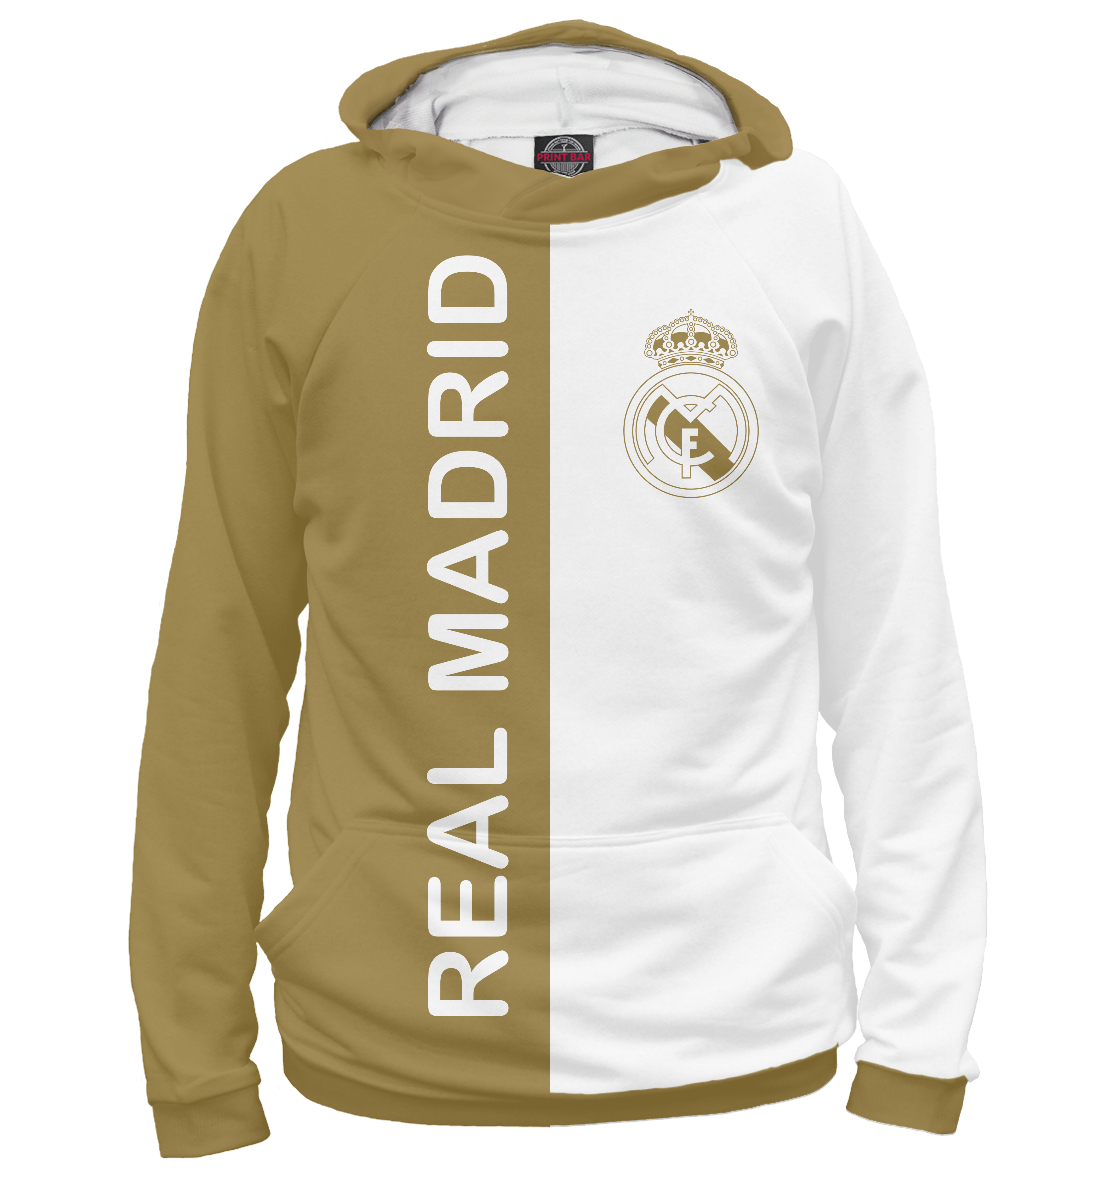 Real Madrid Gold